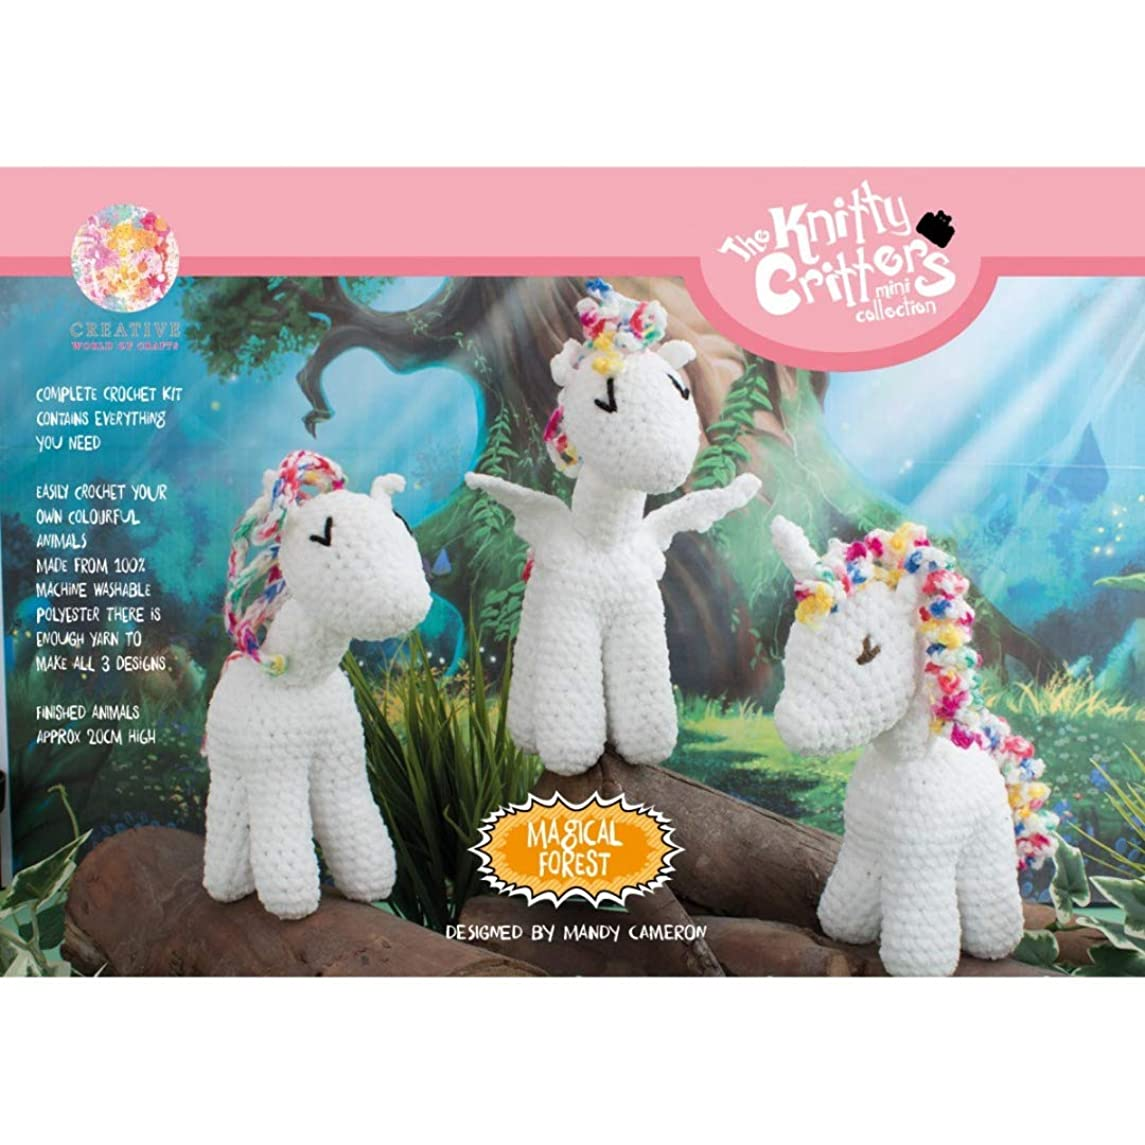 Creative World of Crafts Knitty Critters - Magical Forest - White (A Complete KNITTY Critters Crochet KIT)